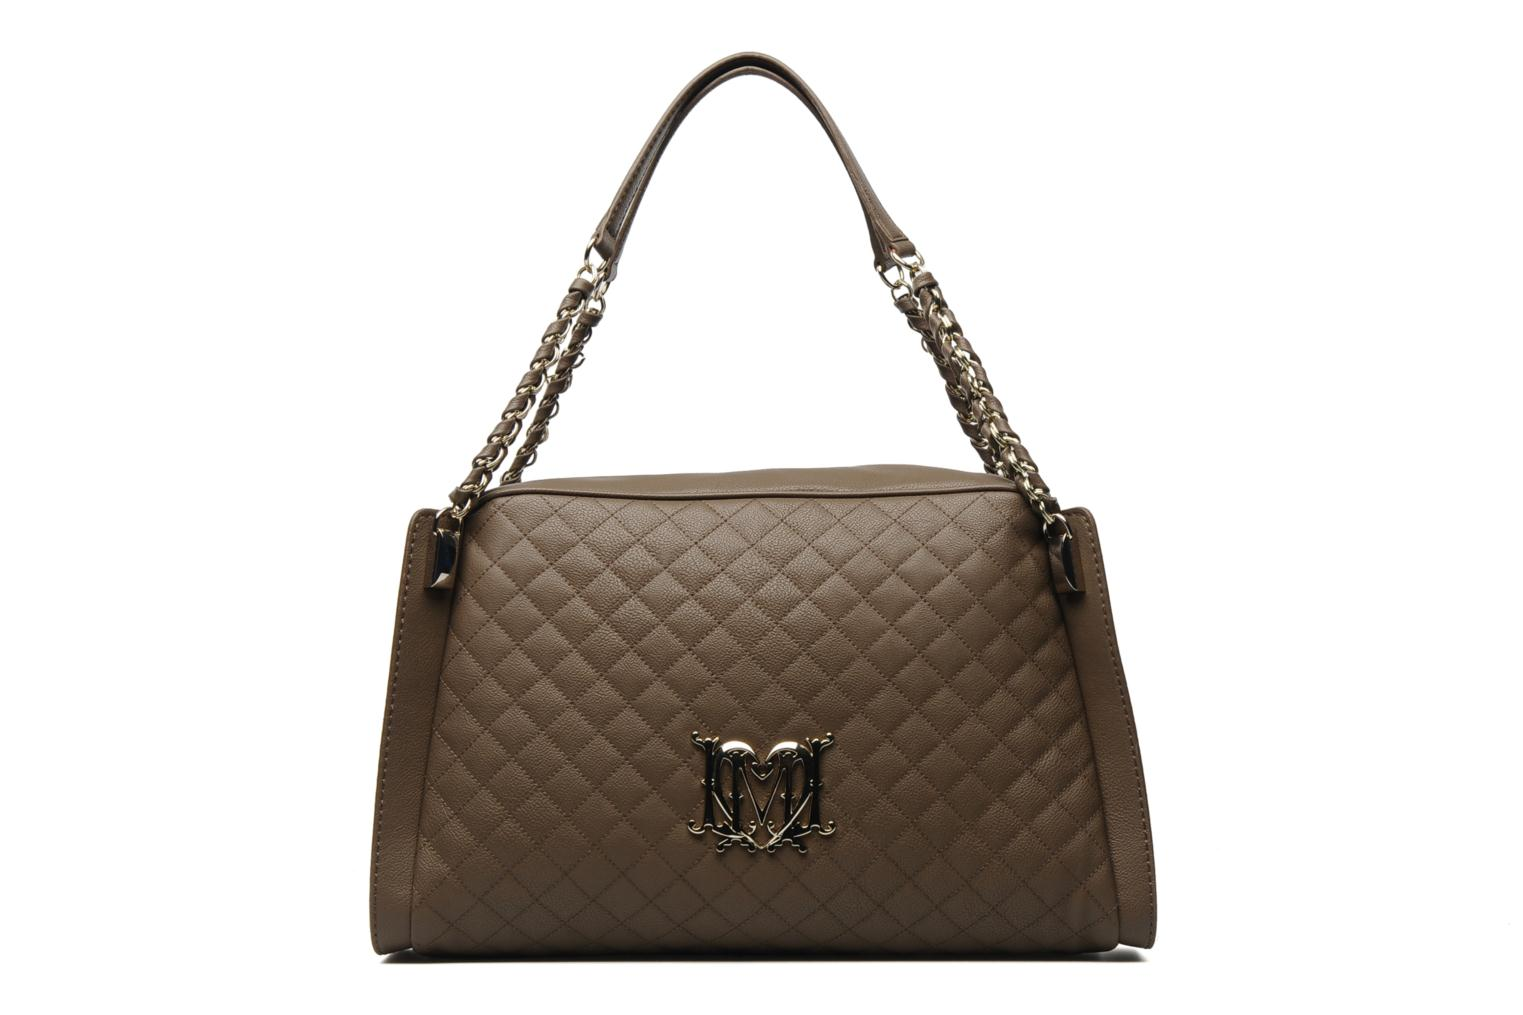 love moschino stitched edge bowling bag handbags in brown at 123786. Black Bedroom Furniture Sets. Home Design Ideas